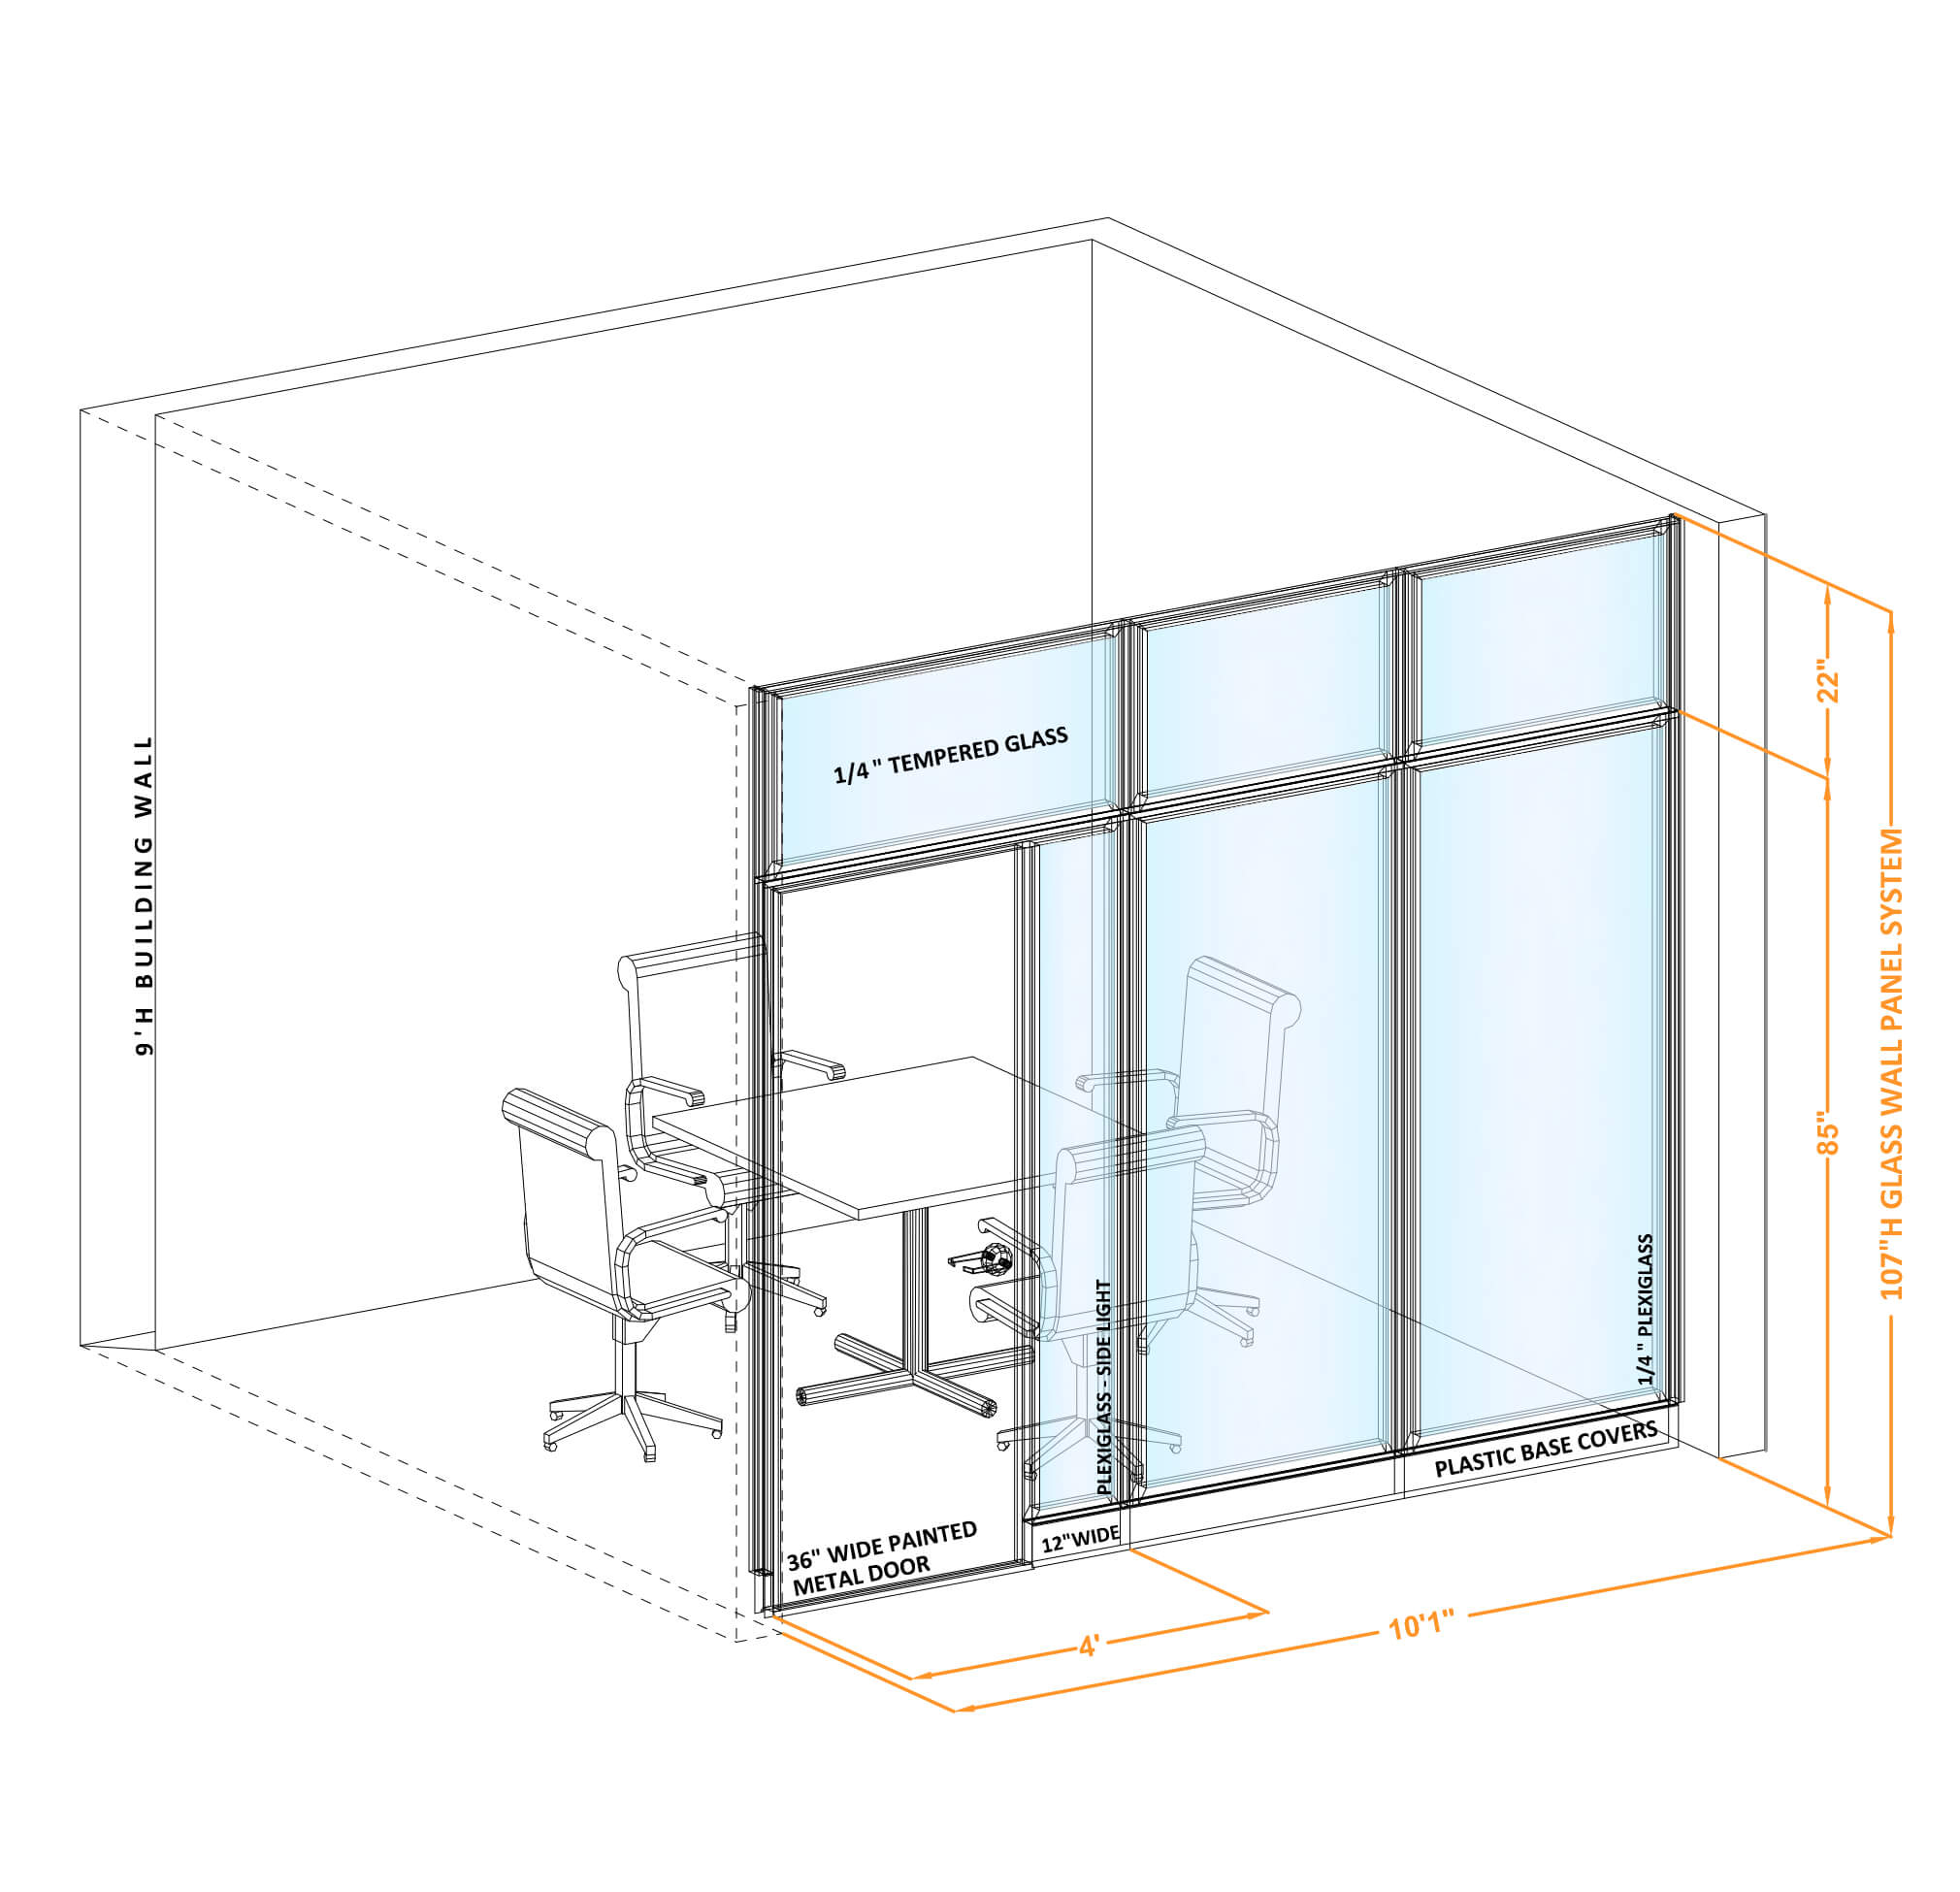 Modular glass office walls GWCR I 100x1070